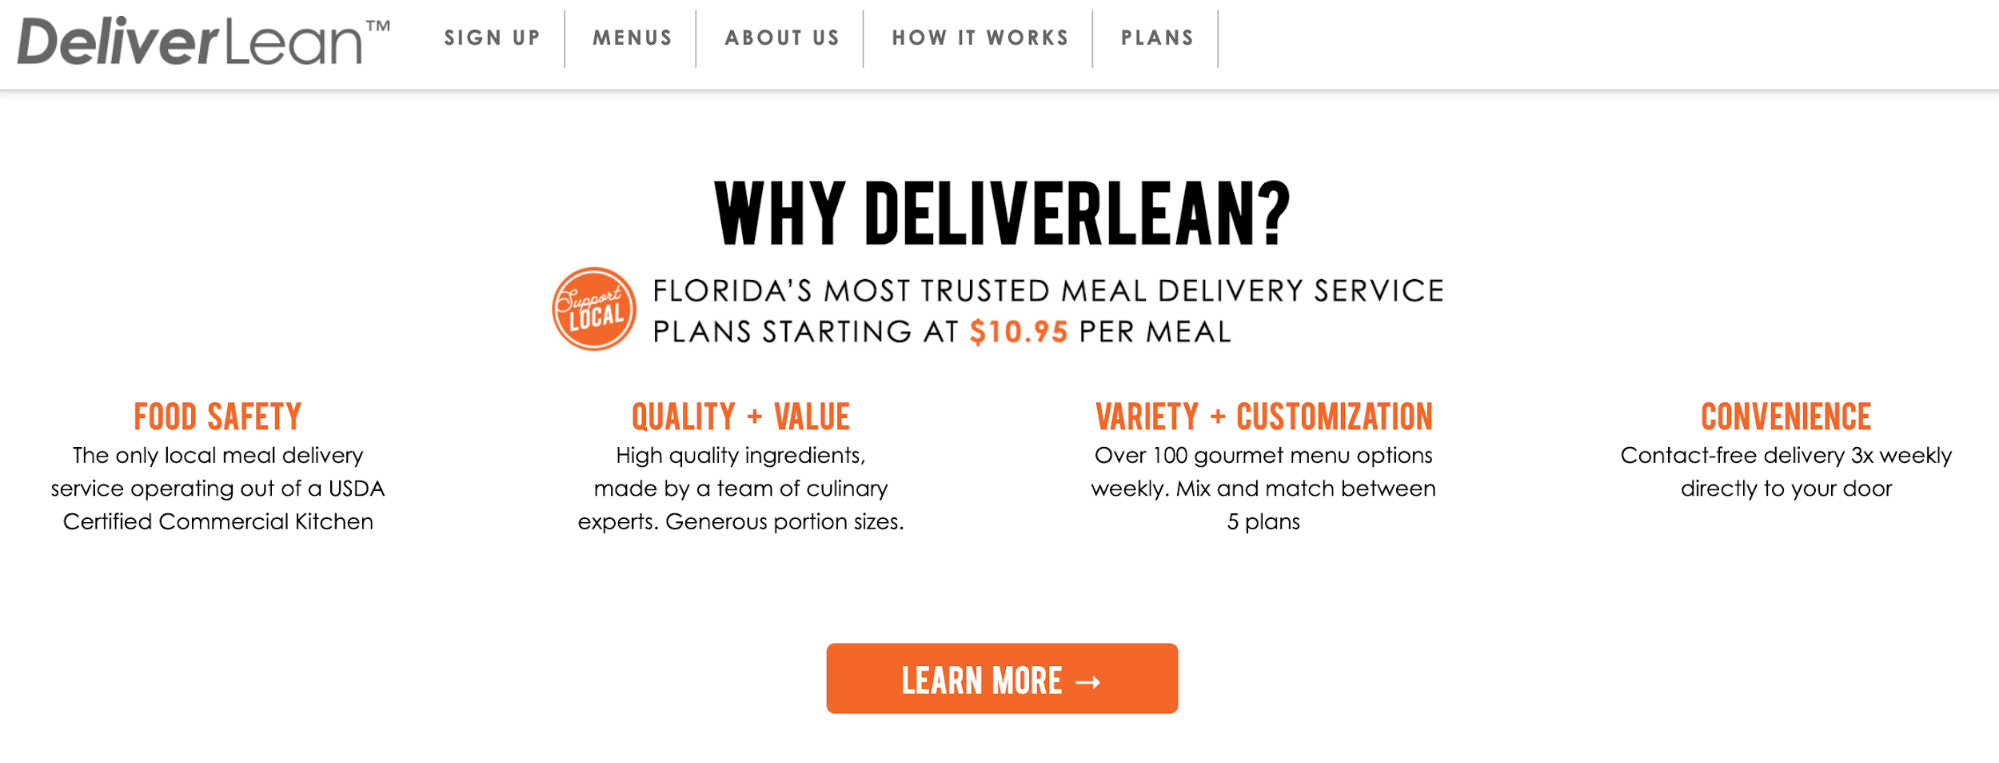 Deliver Lean's homepage, which features an overview of their sample meal plans